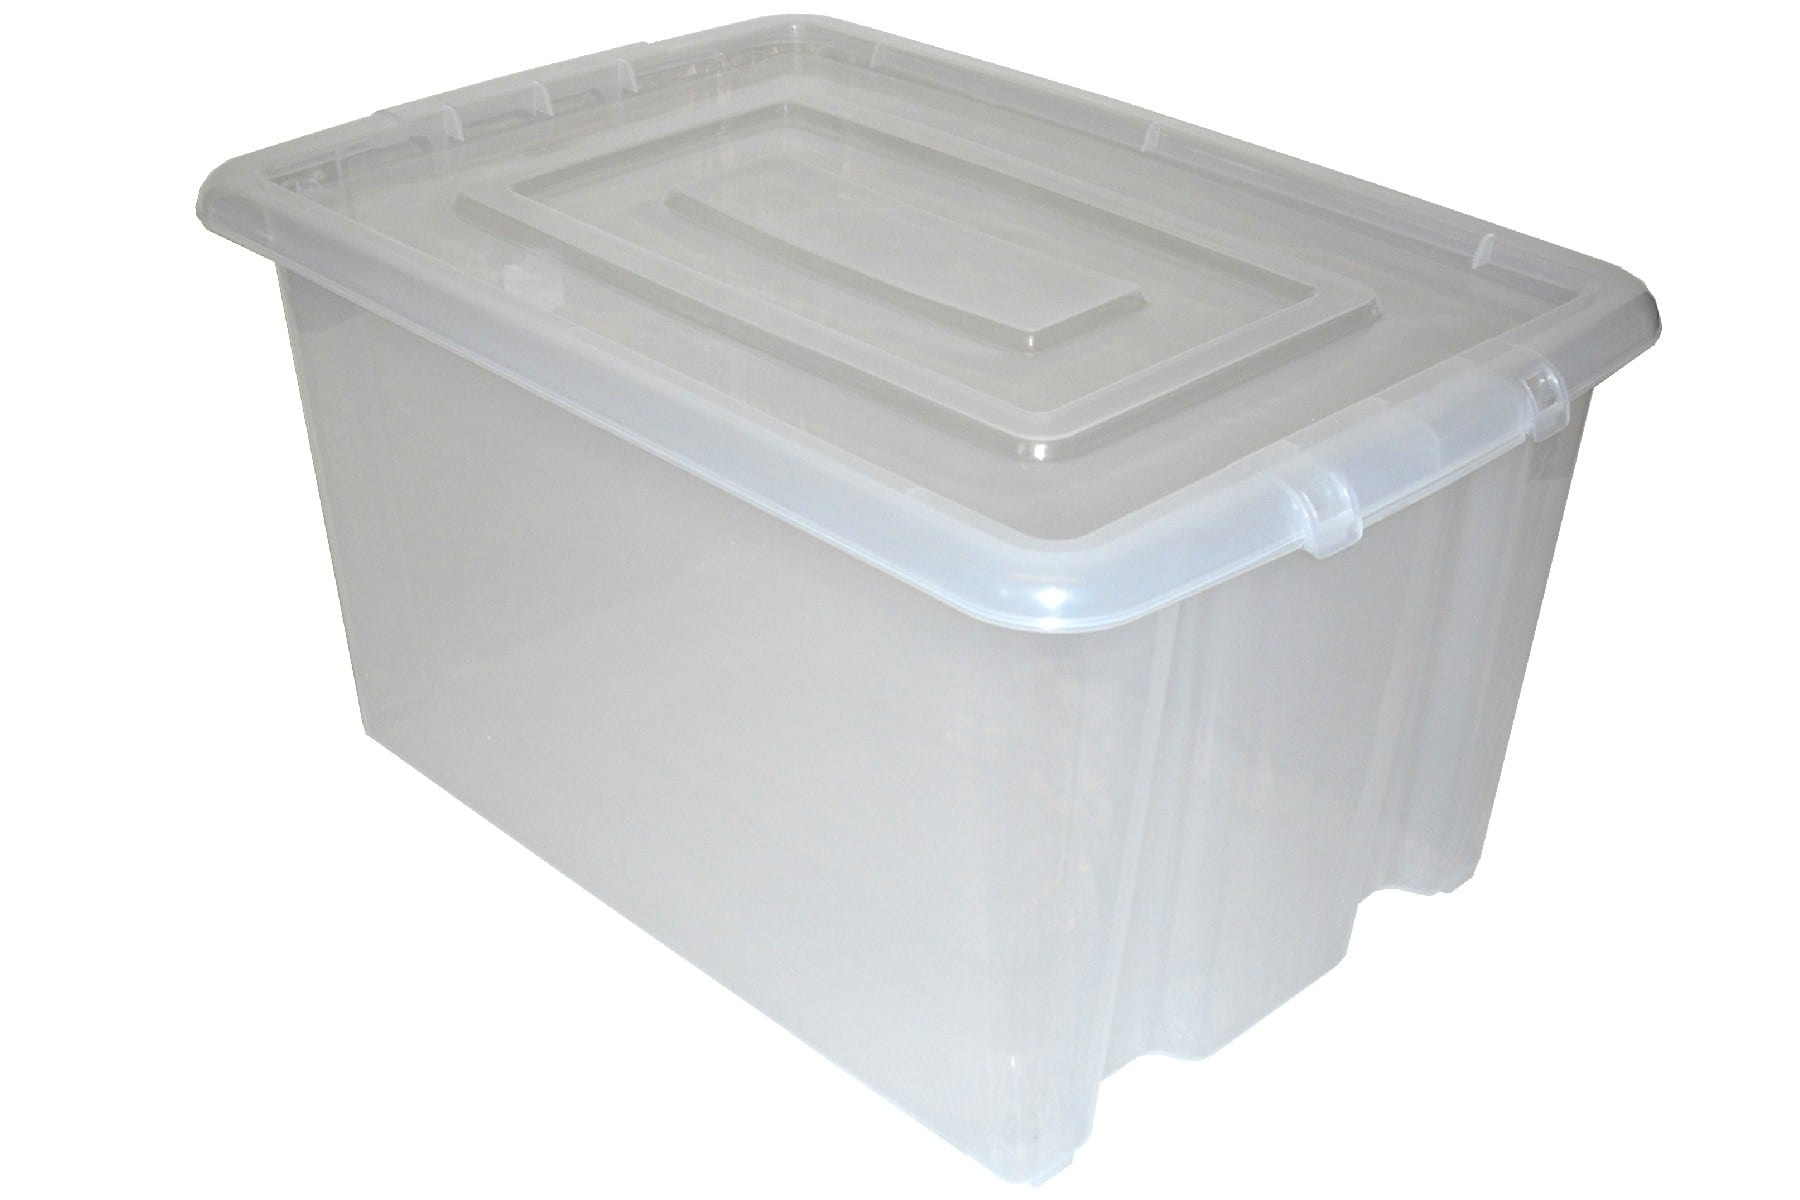 Plastic Storage Boxes The Ideal Storage Solution